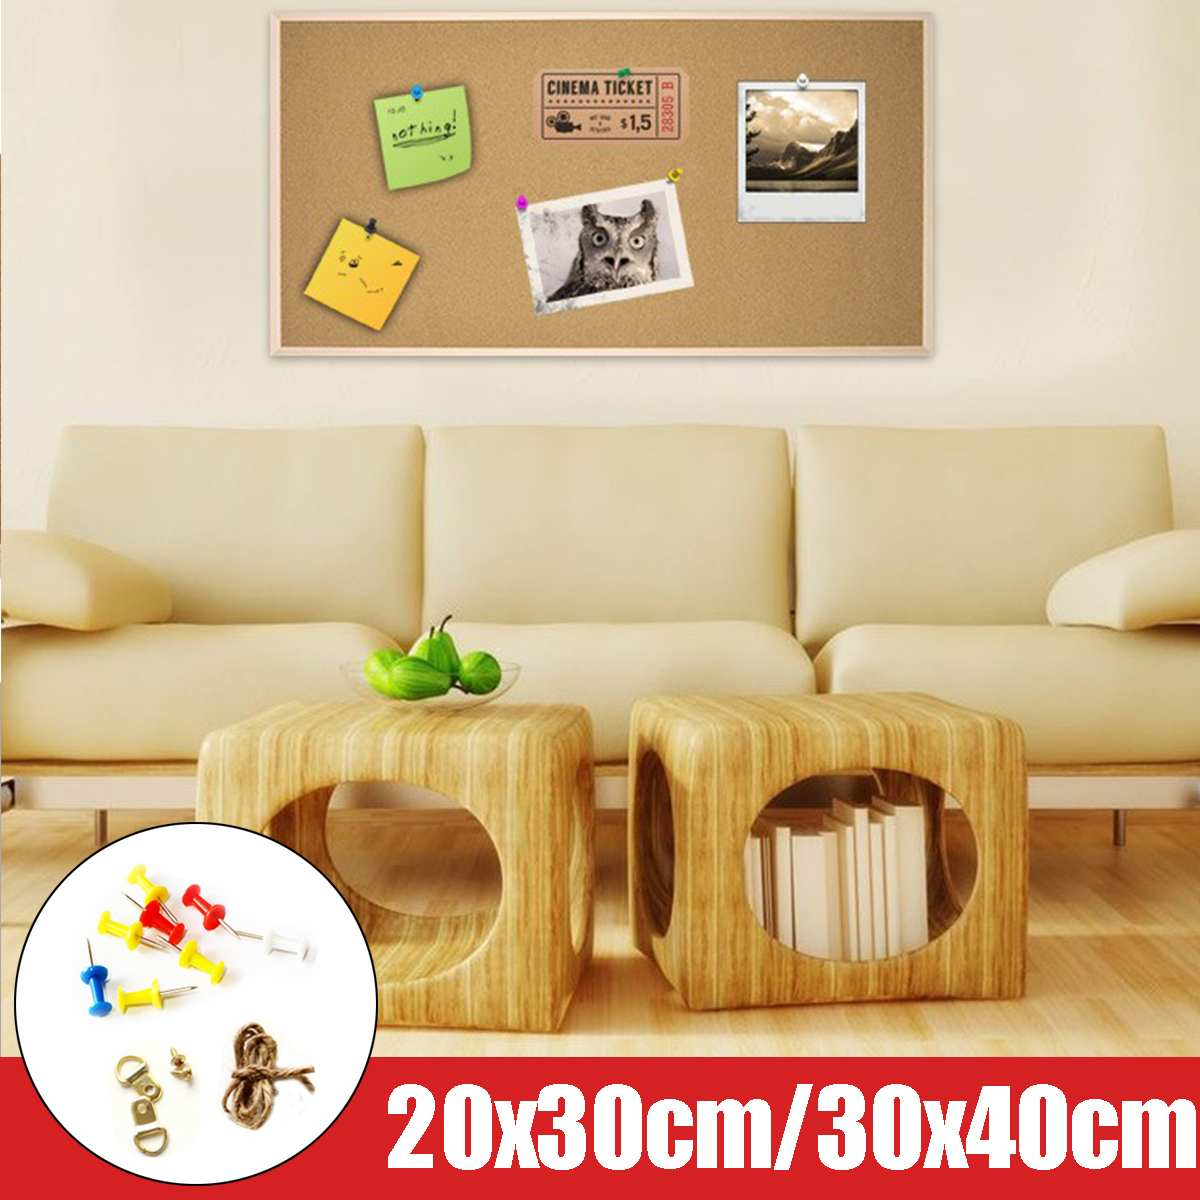 Wood Wall Hanging Message Board Note Board Cork Frame Pin Message Notice Board For Home Office Shop Memo School Photo Background